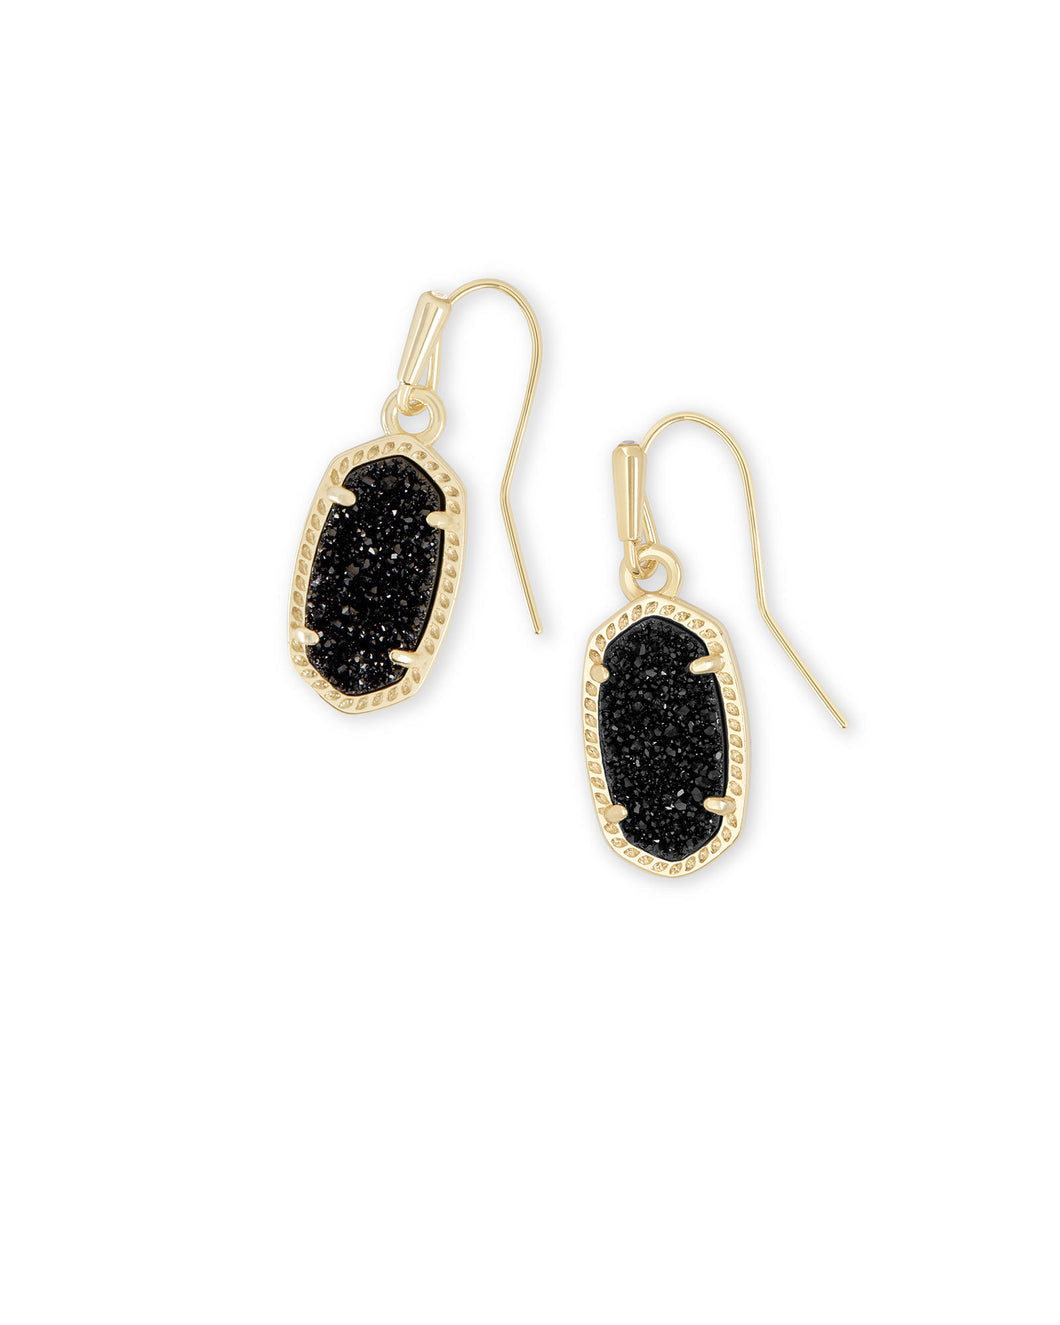 Kendra Scott Lee Black Druzy in Gold